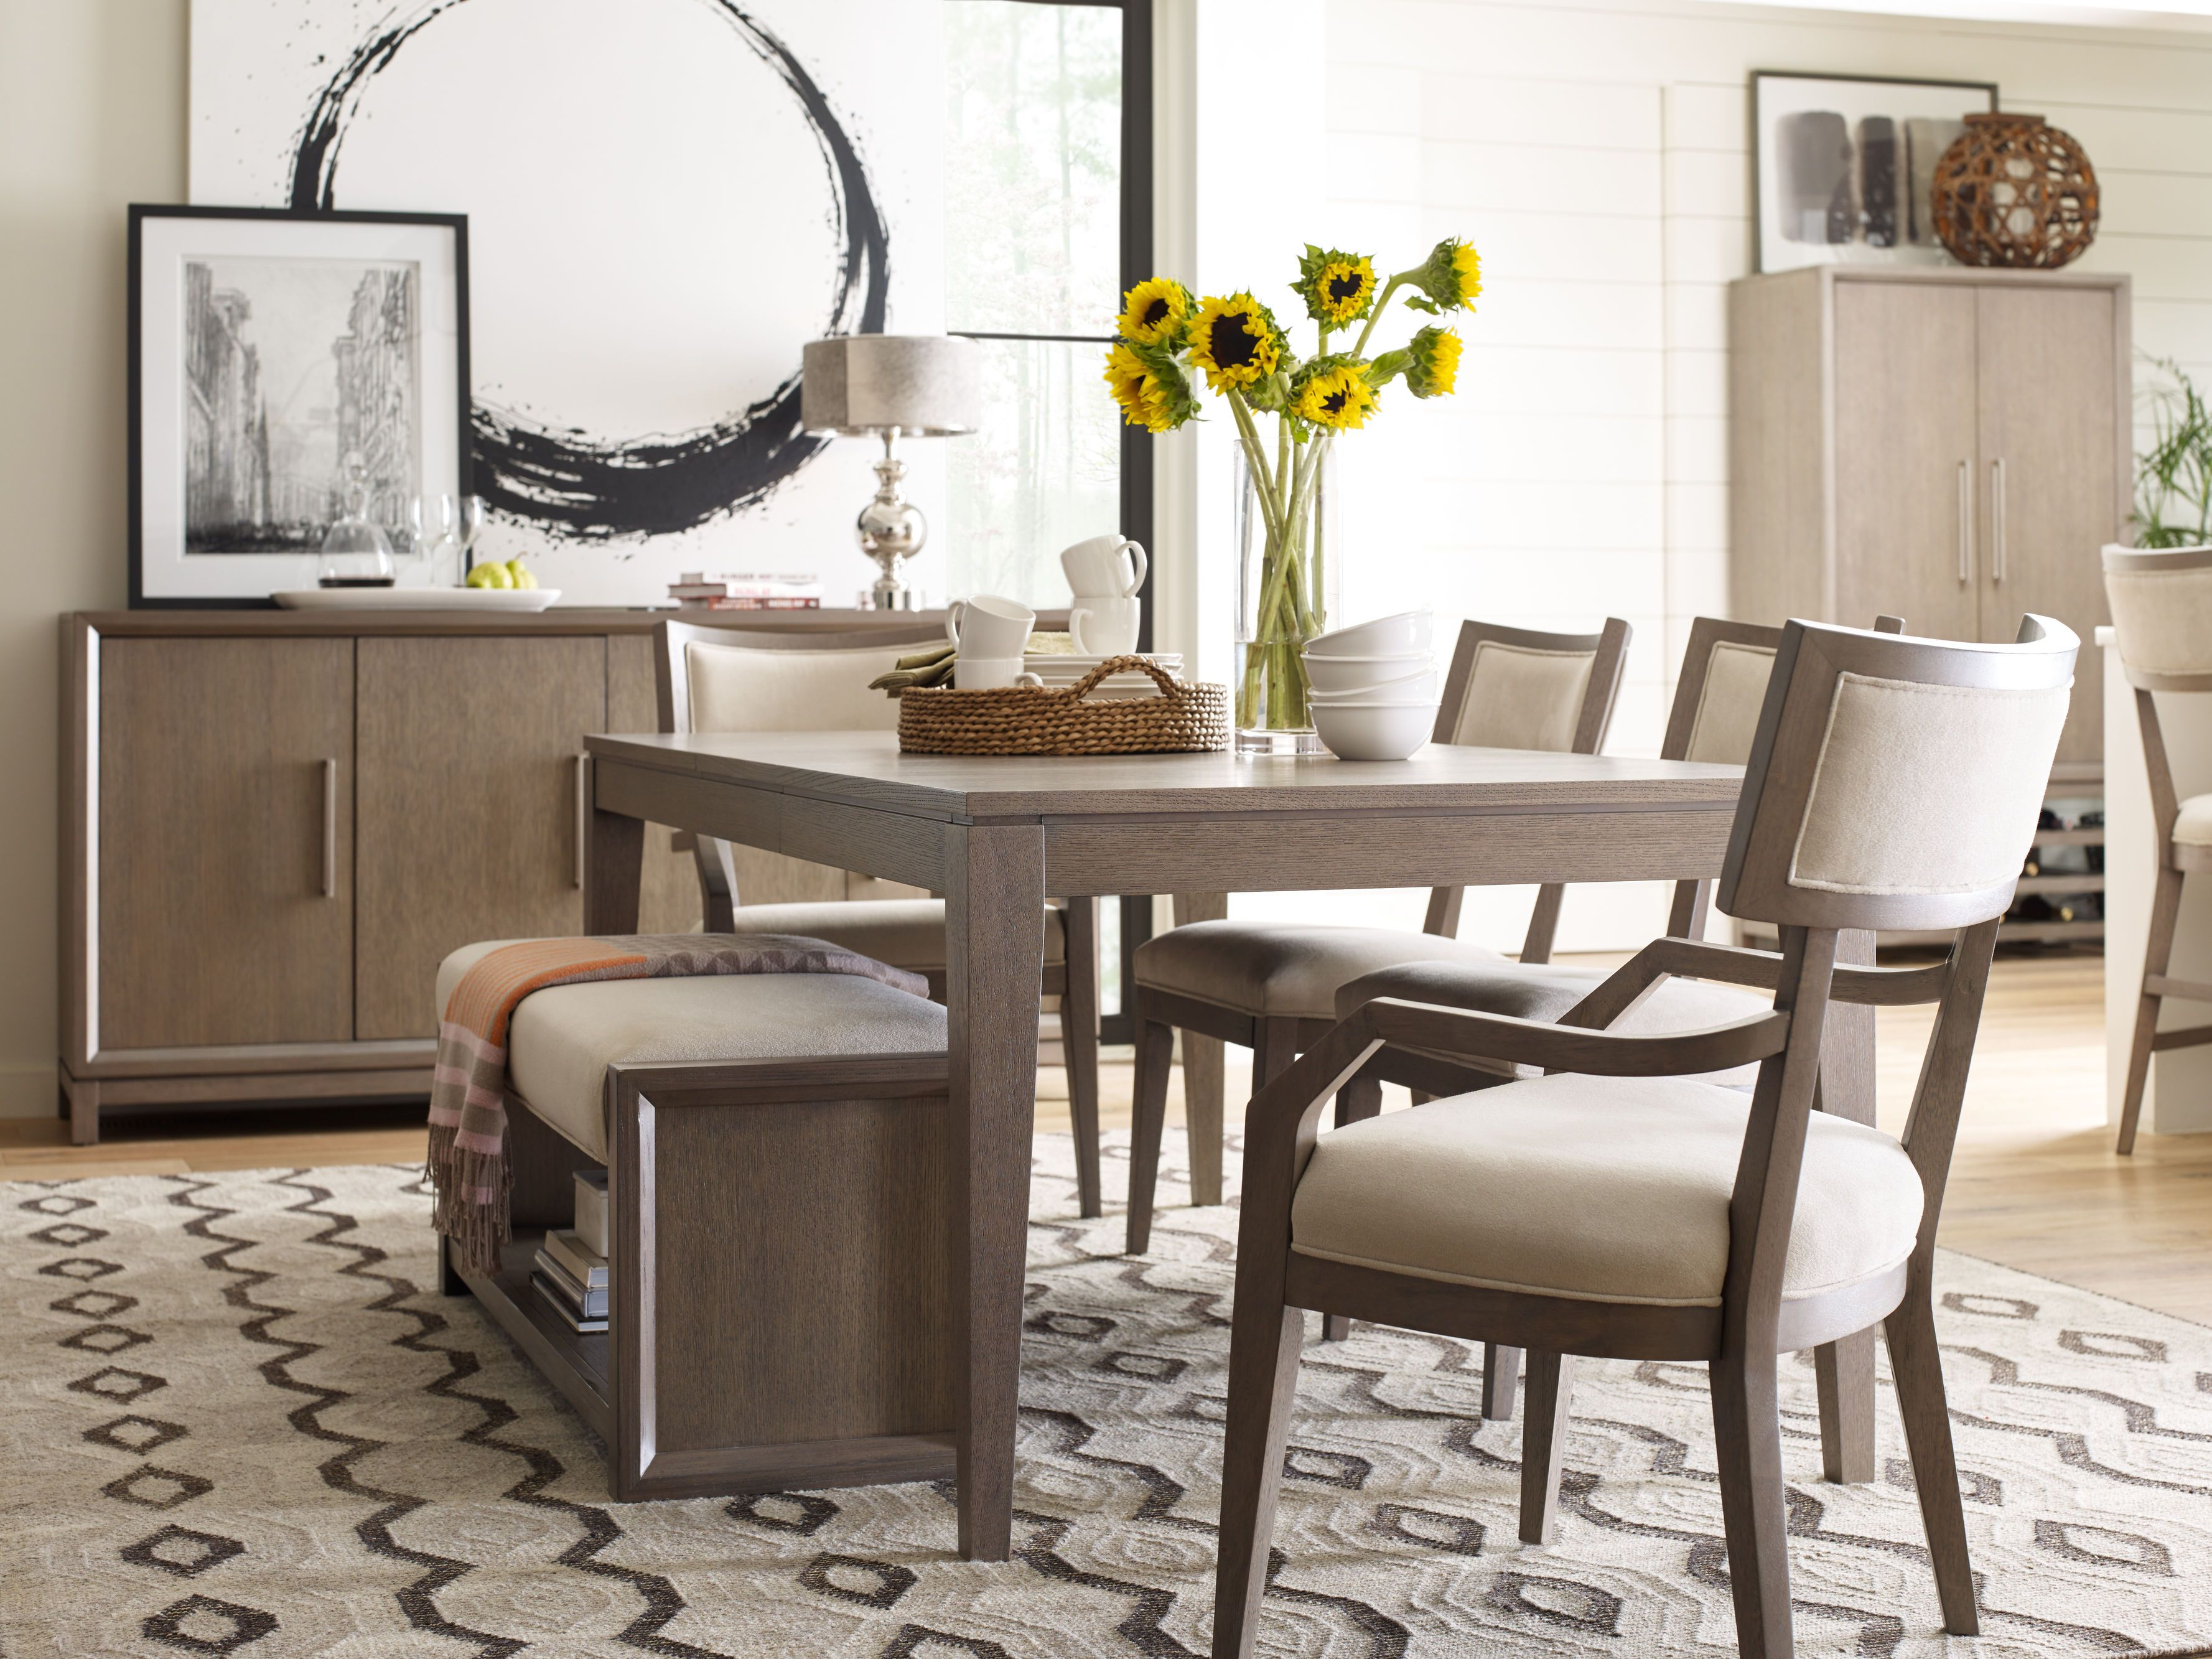 highline by rachael ray home is a collection of textural modern